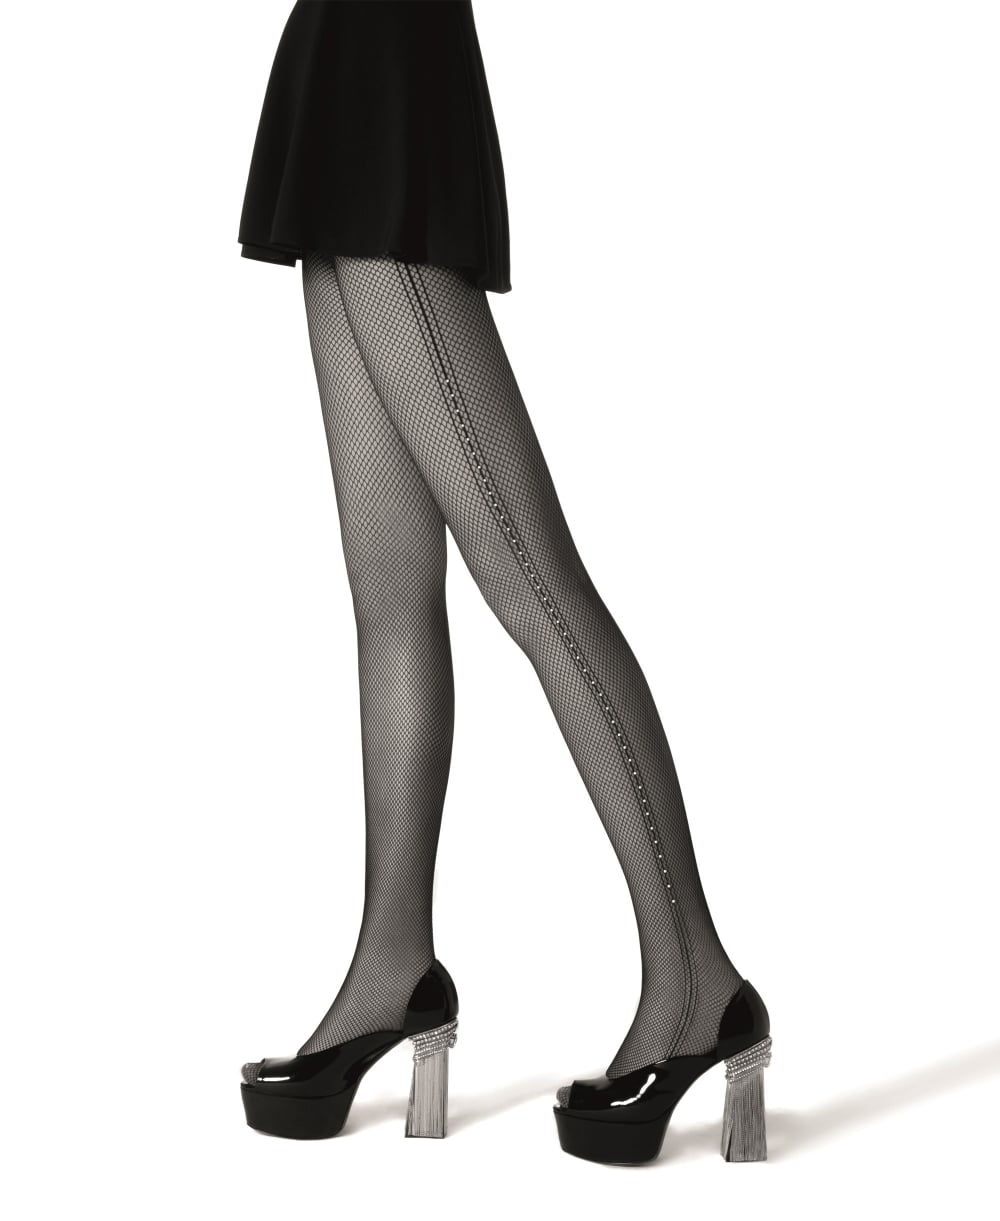 excellent quality classic styles good looking La Perla Crystal Dream Tights - Tights from luxury-legs.com UK